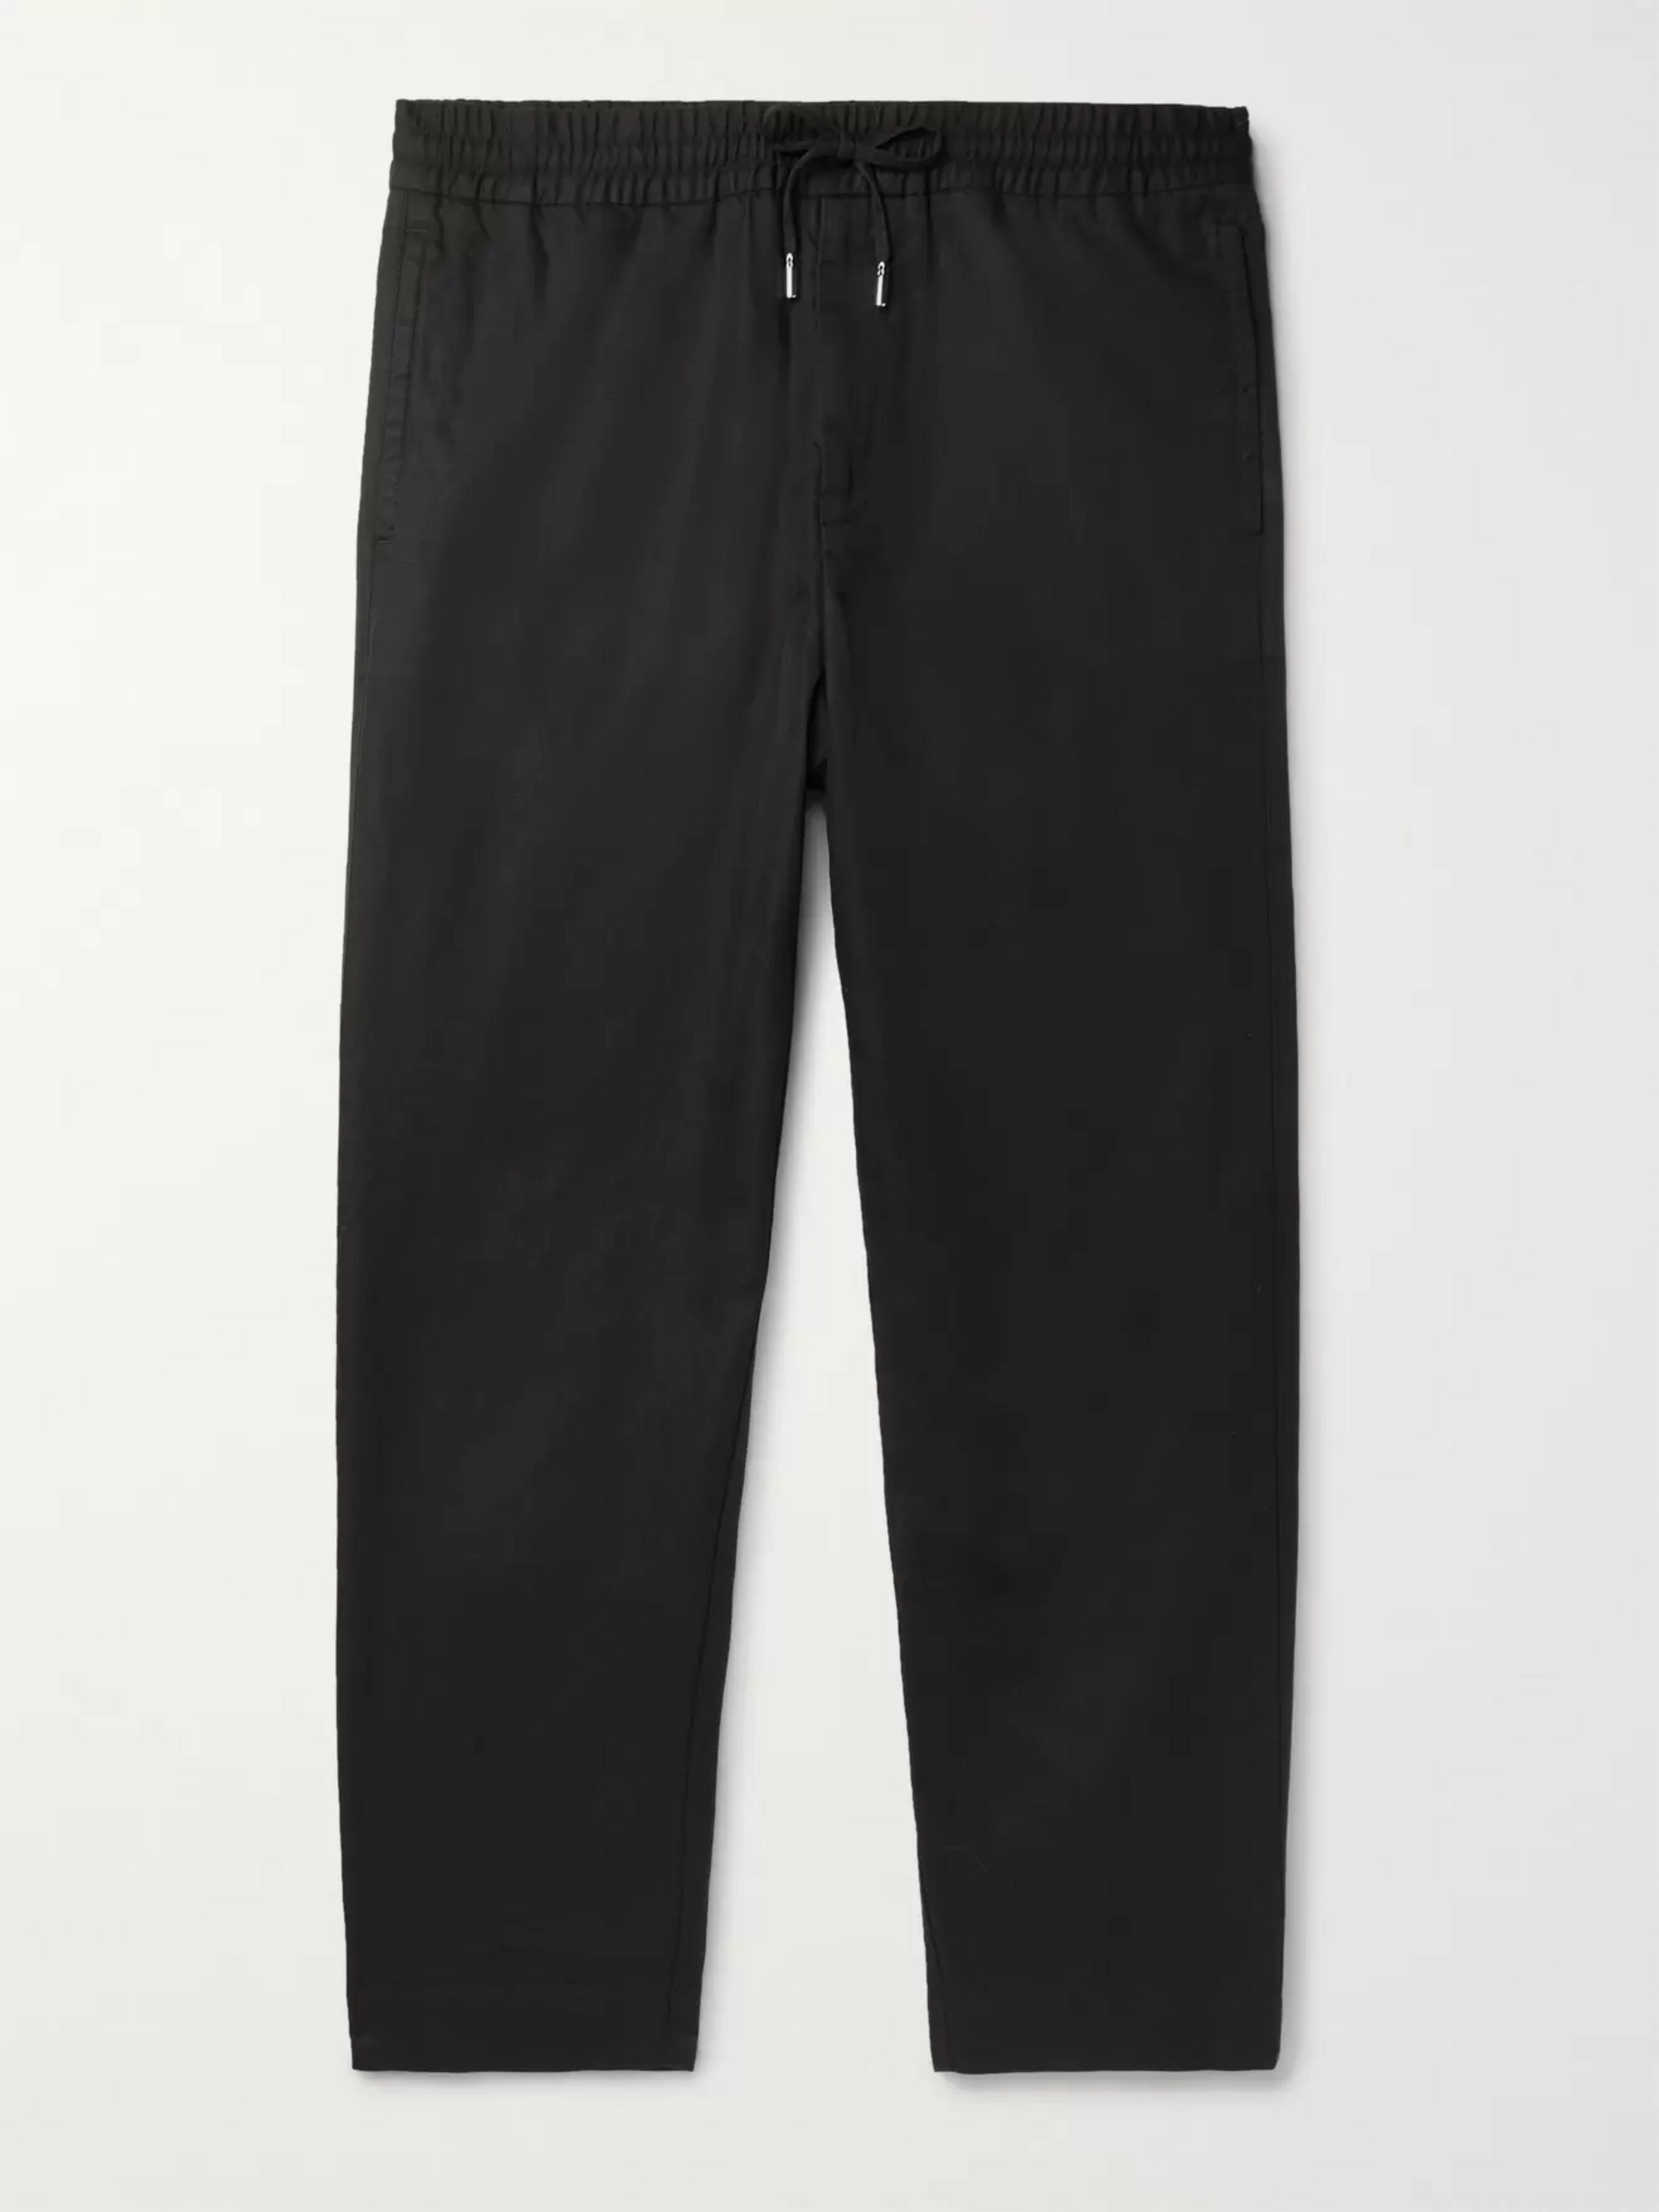 Mr P. Black Slim-Fit Tapered Linen and Cotton-Blend Drawstring Trousers